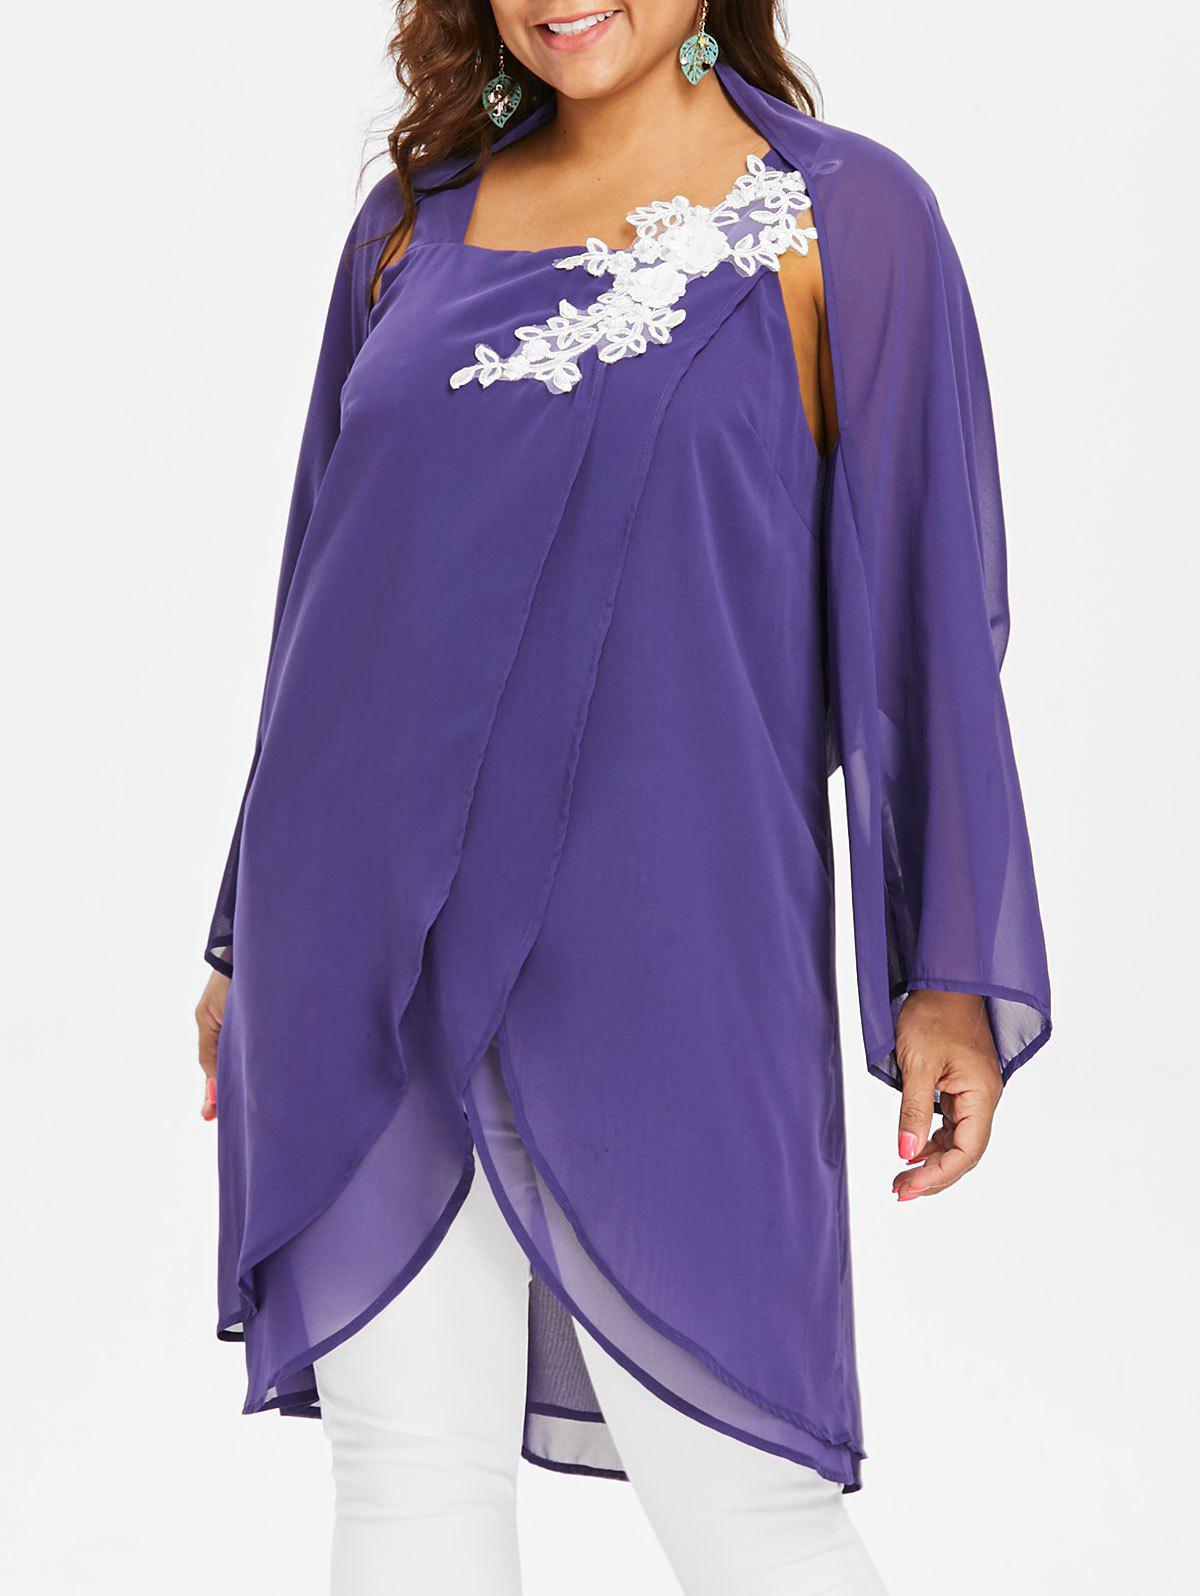 Plus Size Overlap Blouse With Chiffon Cape - PURPLE 2X